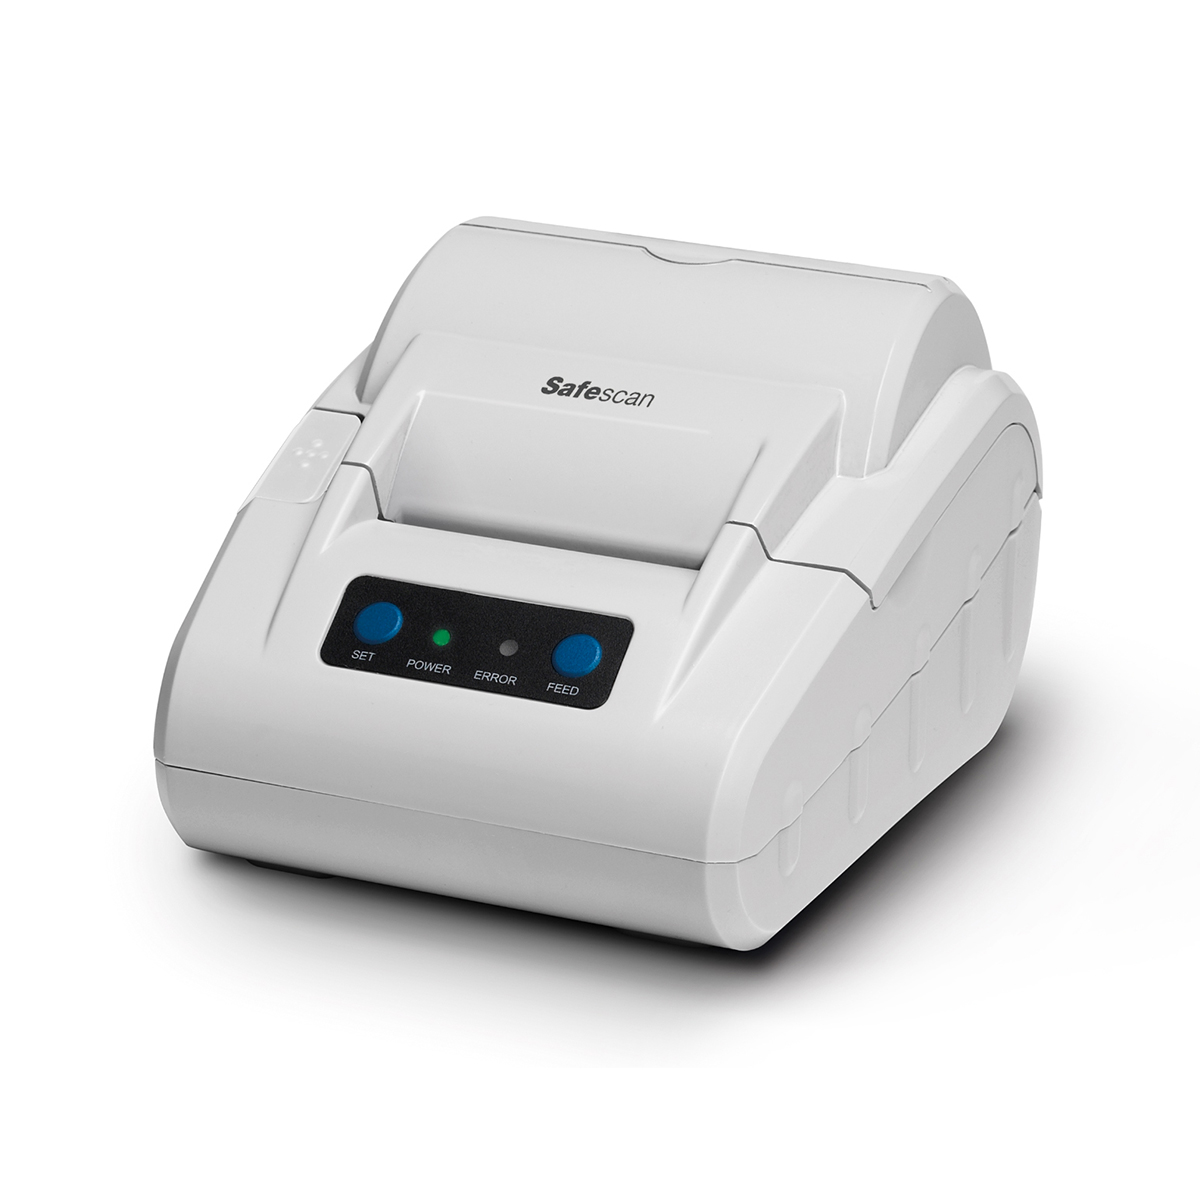 Safescan TP-230 Thermal Printer - Grey